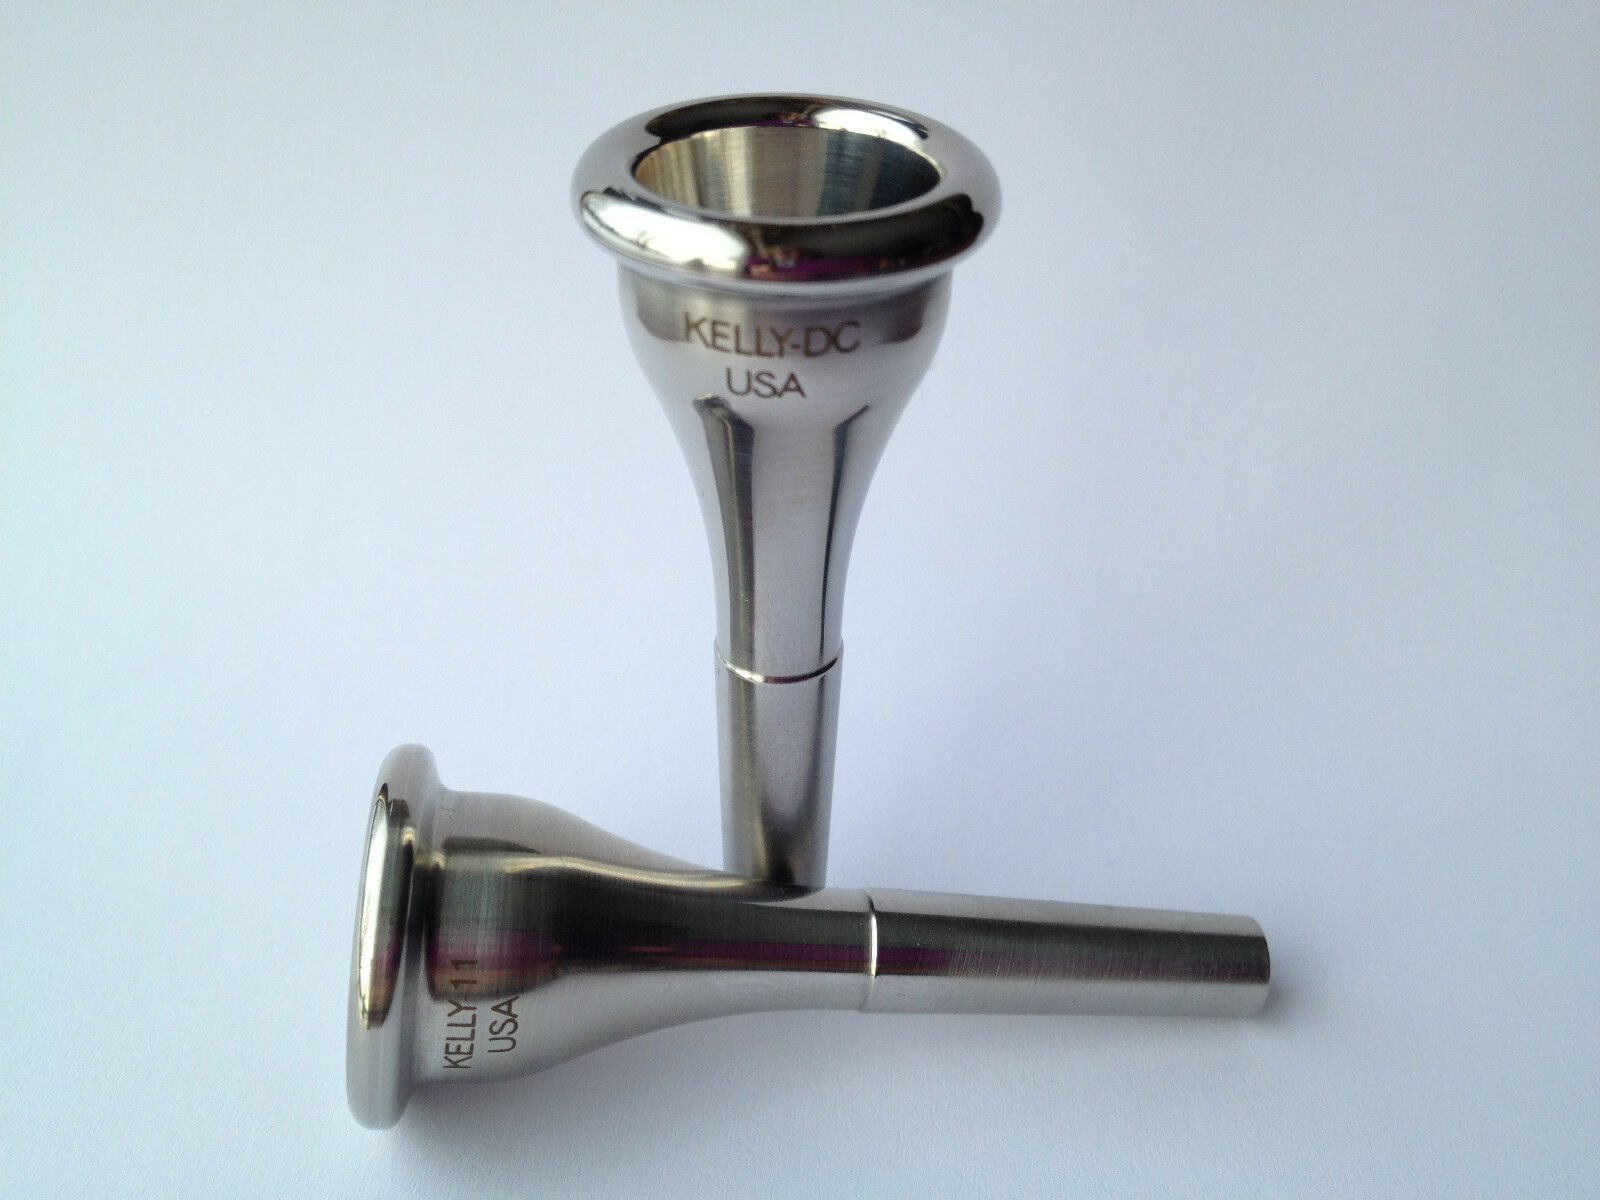 Stainless-steel   KELLY-MDC French horn mpc   Medium-deep   KELLY Mouthpieces